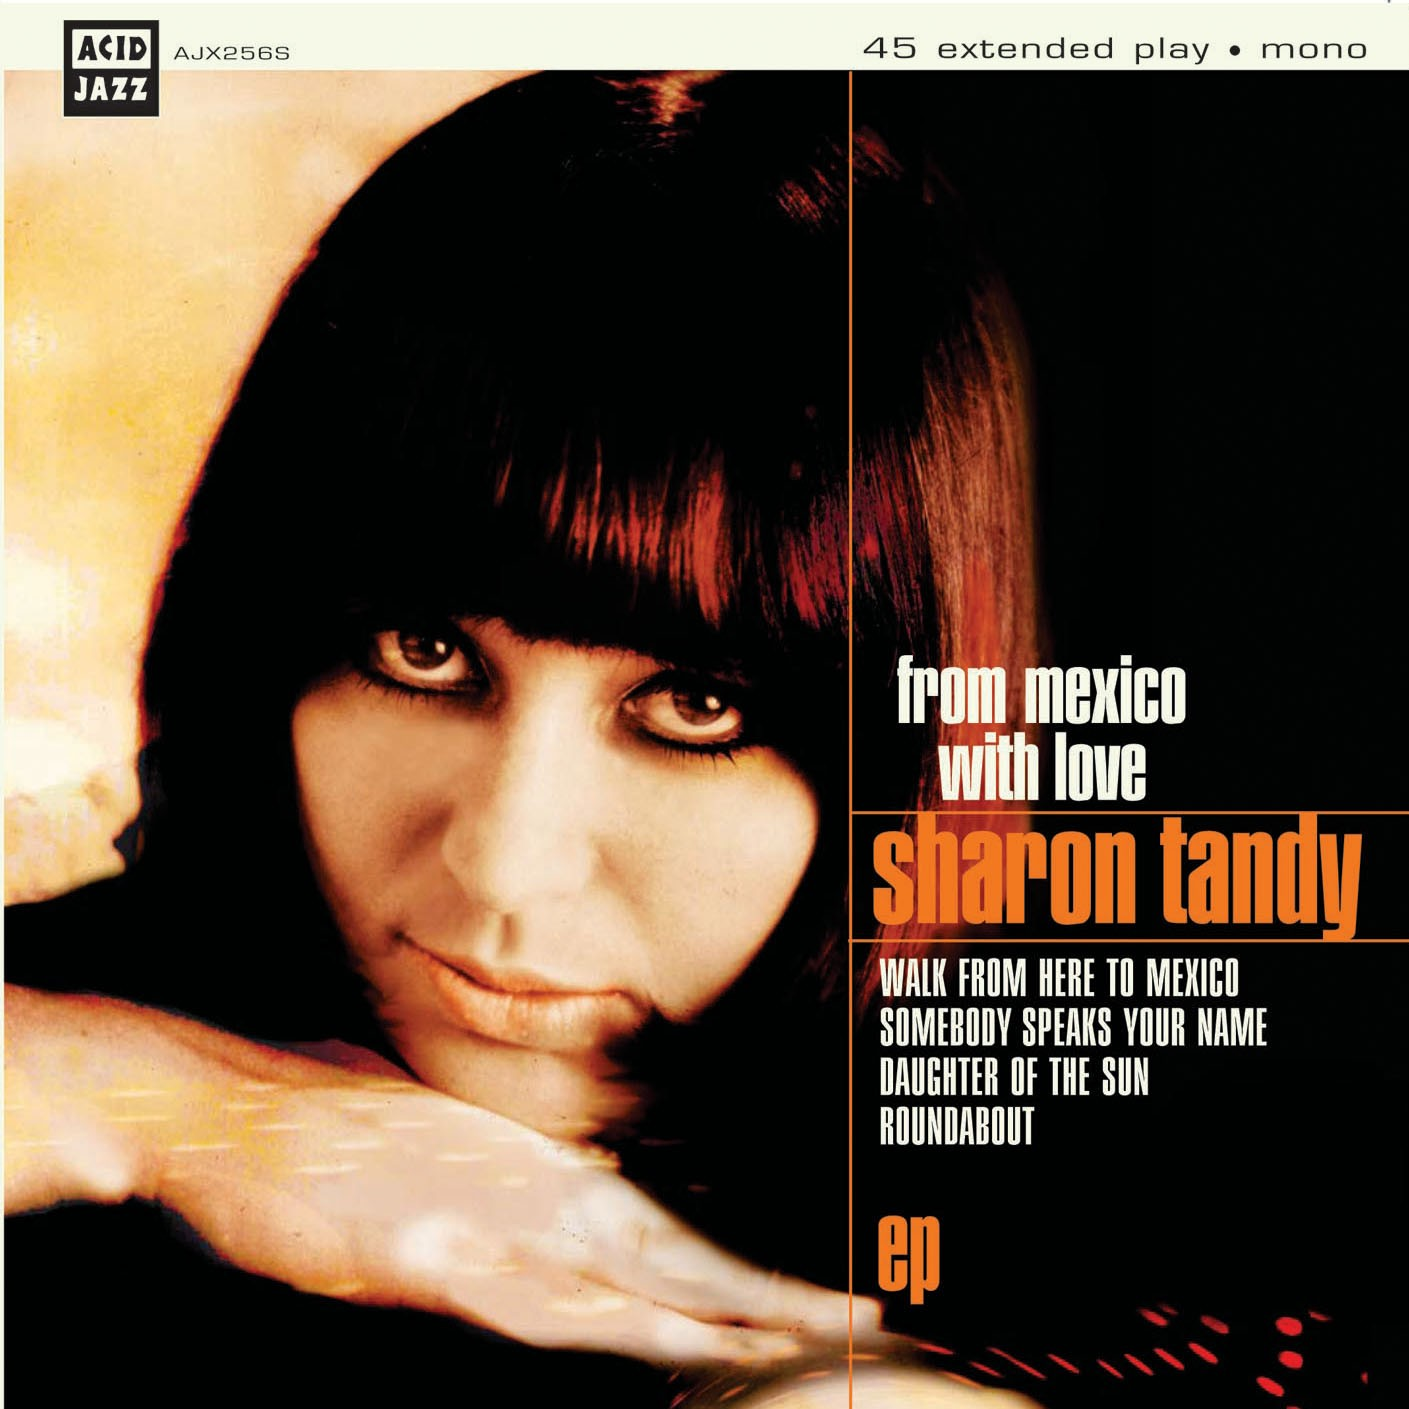 Sharon Tandy/FROM MEXICO WITH LOVE EP 7""